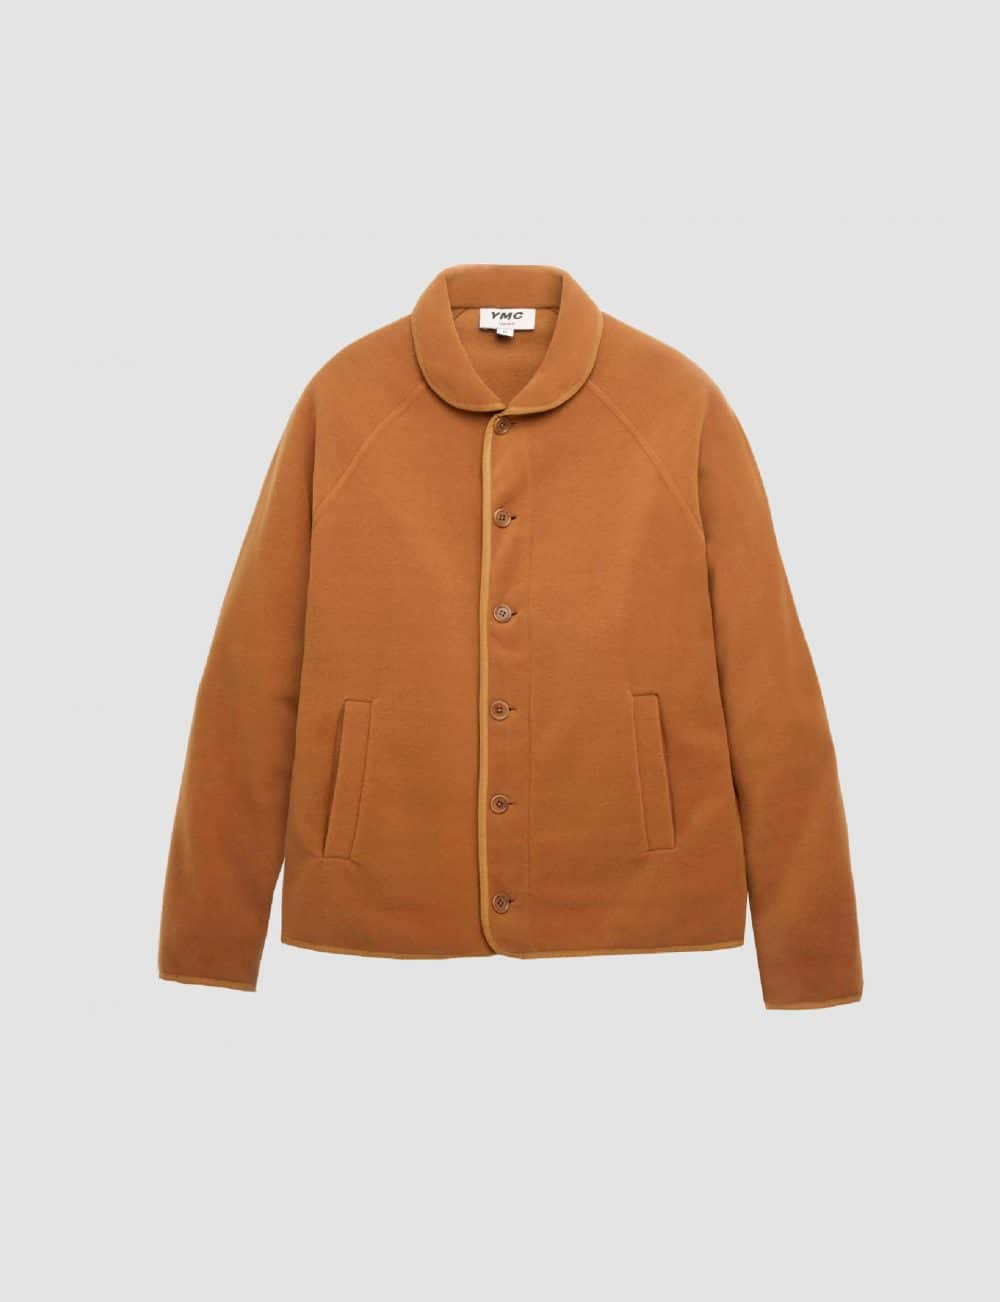 YMC - Beach fleece - Brown